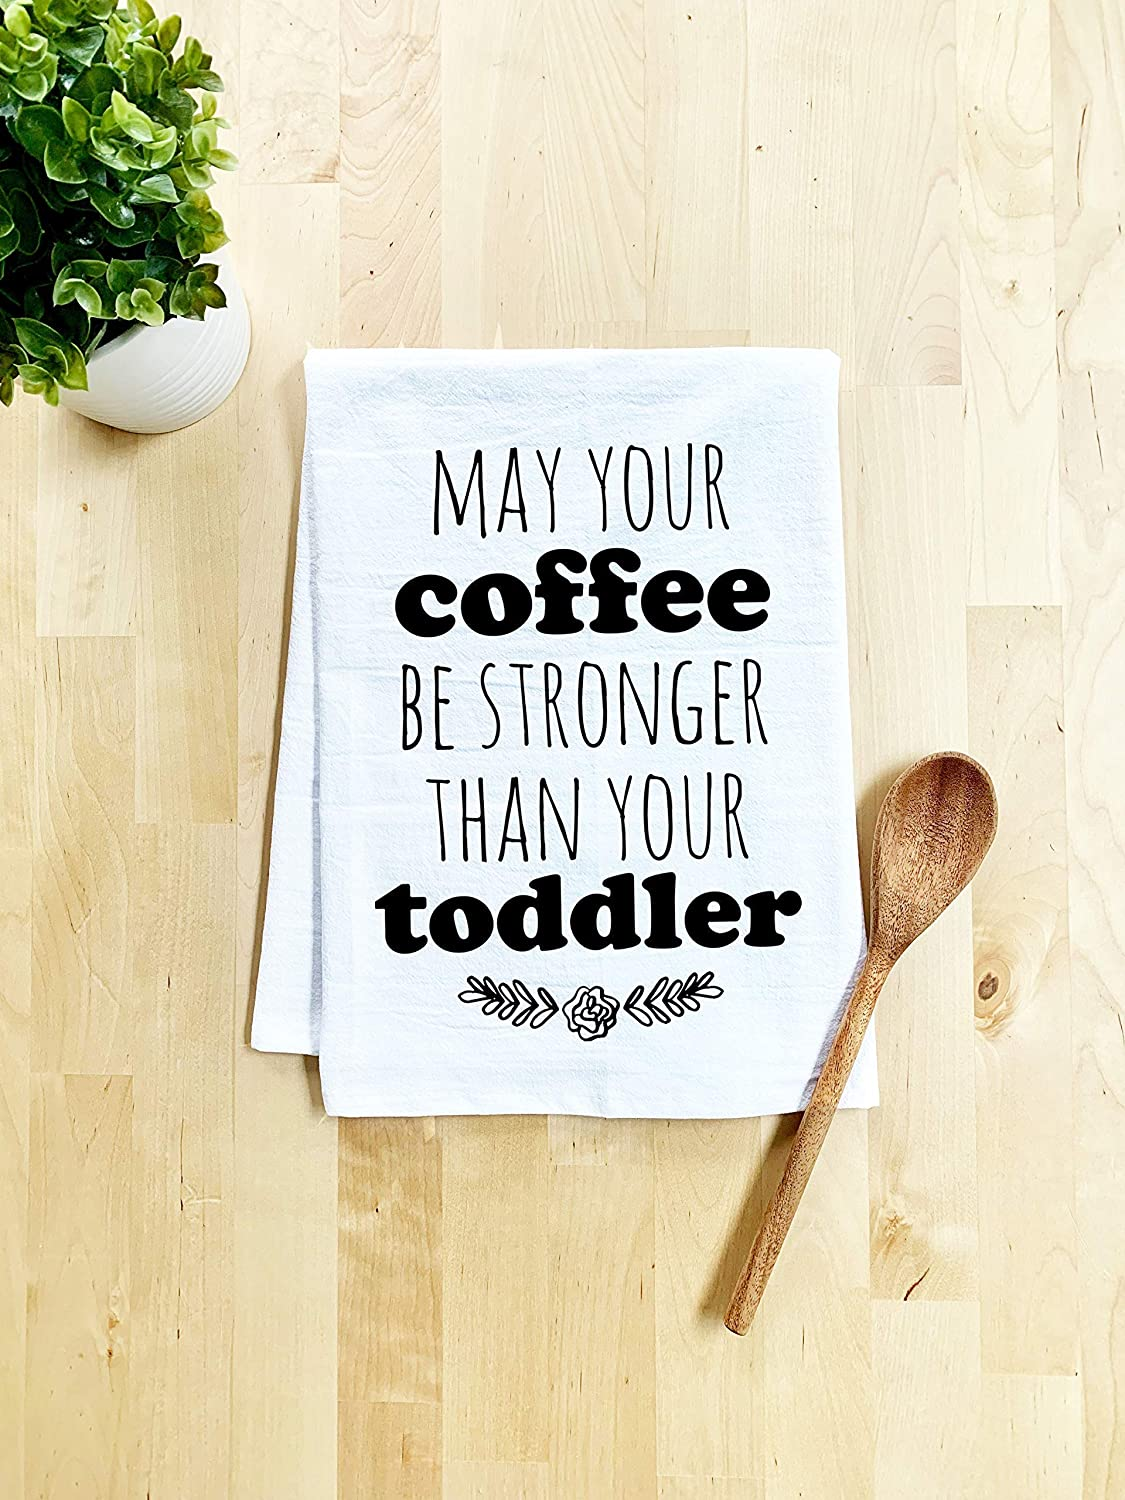 Funny Kitchen Towel, May Your Coffee Be Stronger Than Your Toddler, Flour Sack Dish Towel, Sweet Housewarming Gift, White